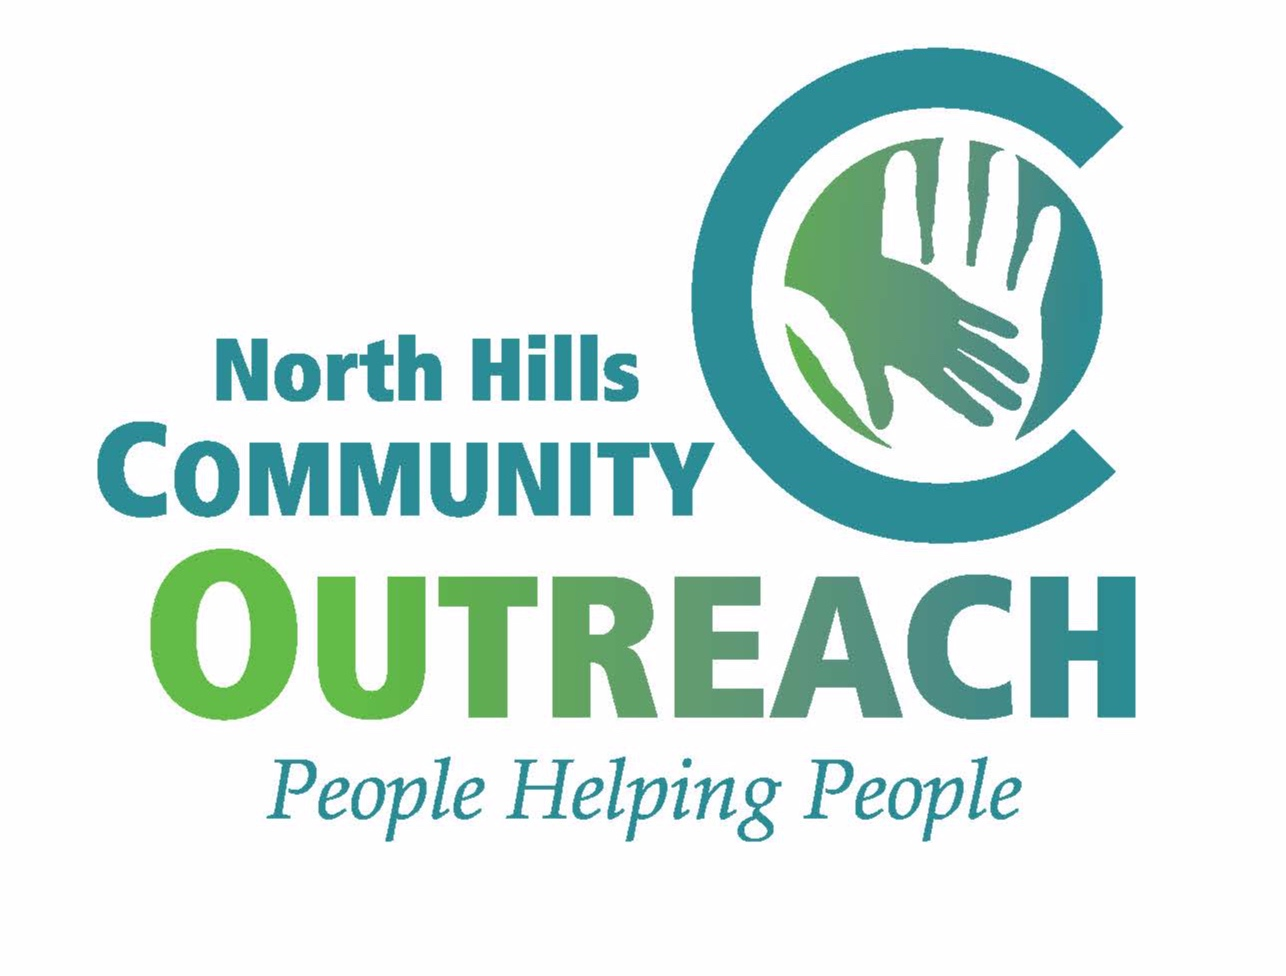 - North Hills Community OutreachNorth Hills Community Outreach is a nonprofit serving people in crisis, hardship and poverty in northern Allegheny County. All programs are free to those in need and include: three food pantries and an organic garden, utility assistance, emergency financial assistance, transportation assistance, employment help, education assistance, seasonal sharing projects (new school supplies, winter coats, Thanksgiving food, holiday gifts for children, personal care items, spring cleaning supplies), tax preparation, 30-minute legal consultations for noncriminal matters, volunteer assistance for senior citizens, shuttle rides for seniors in the route 28 corridor, and a goal setting program for education or employment.